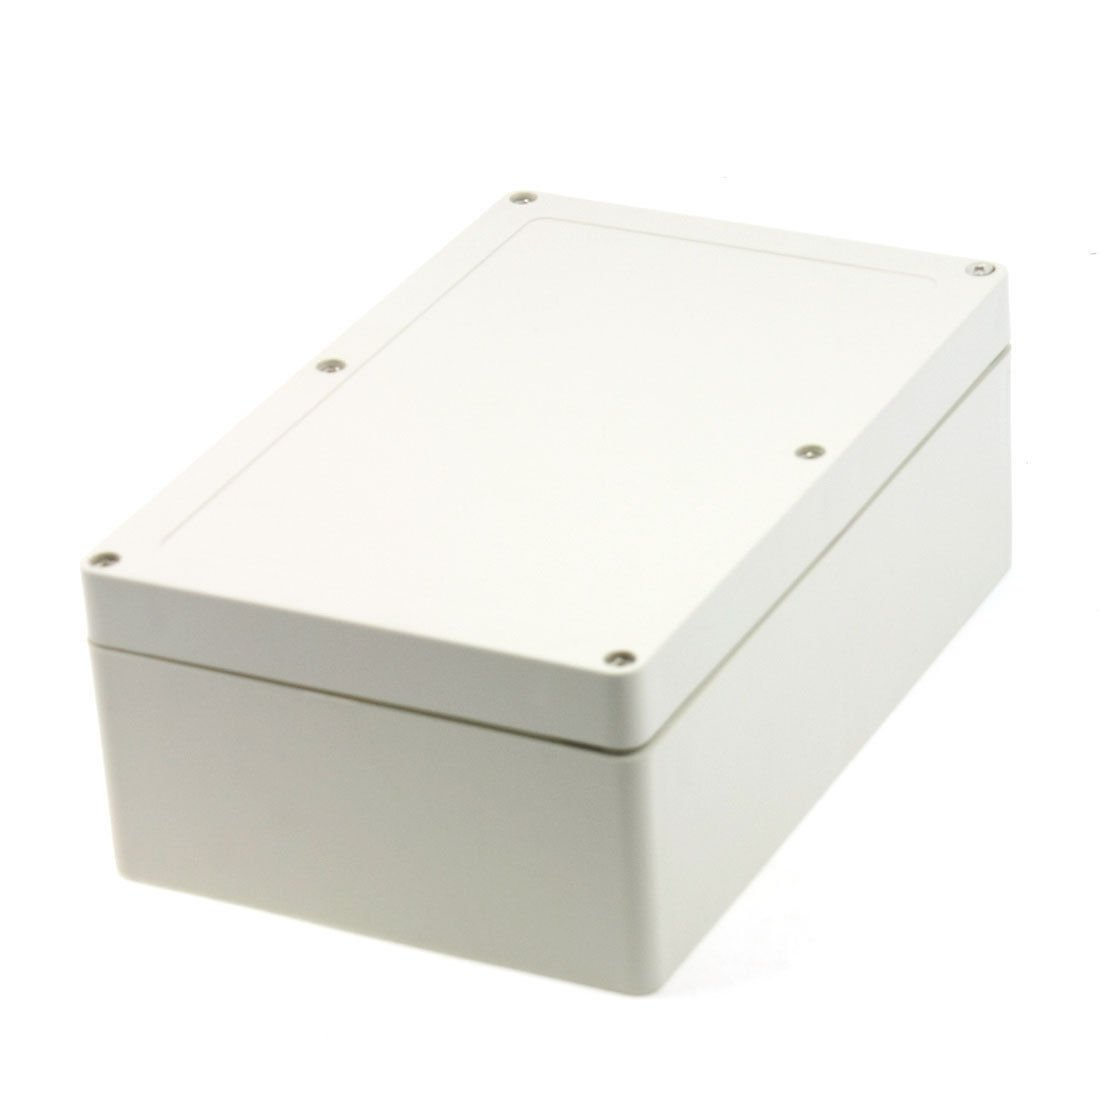 Surface Mounted Waterproof Sealed Plastic Electric Junction Box 230mmx150mmx86mm